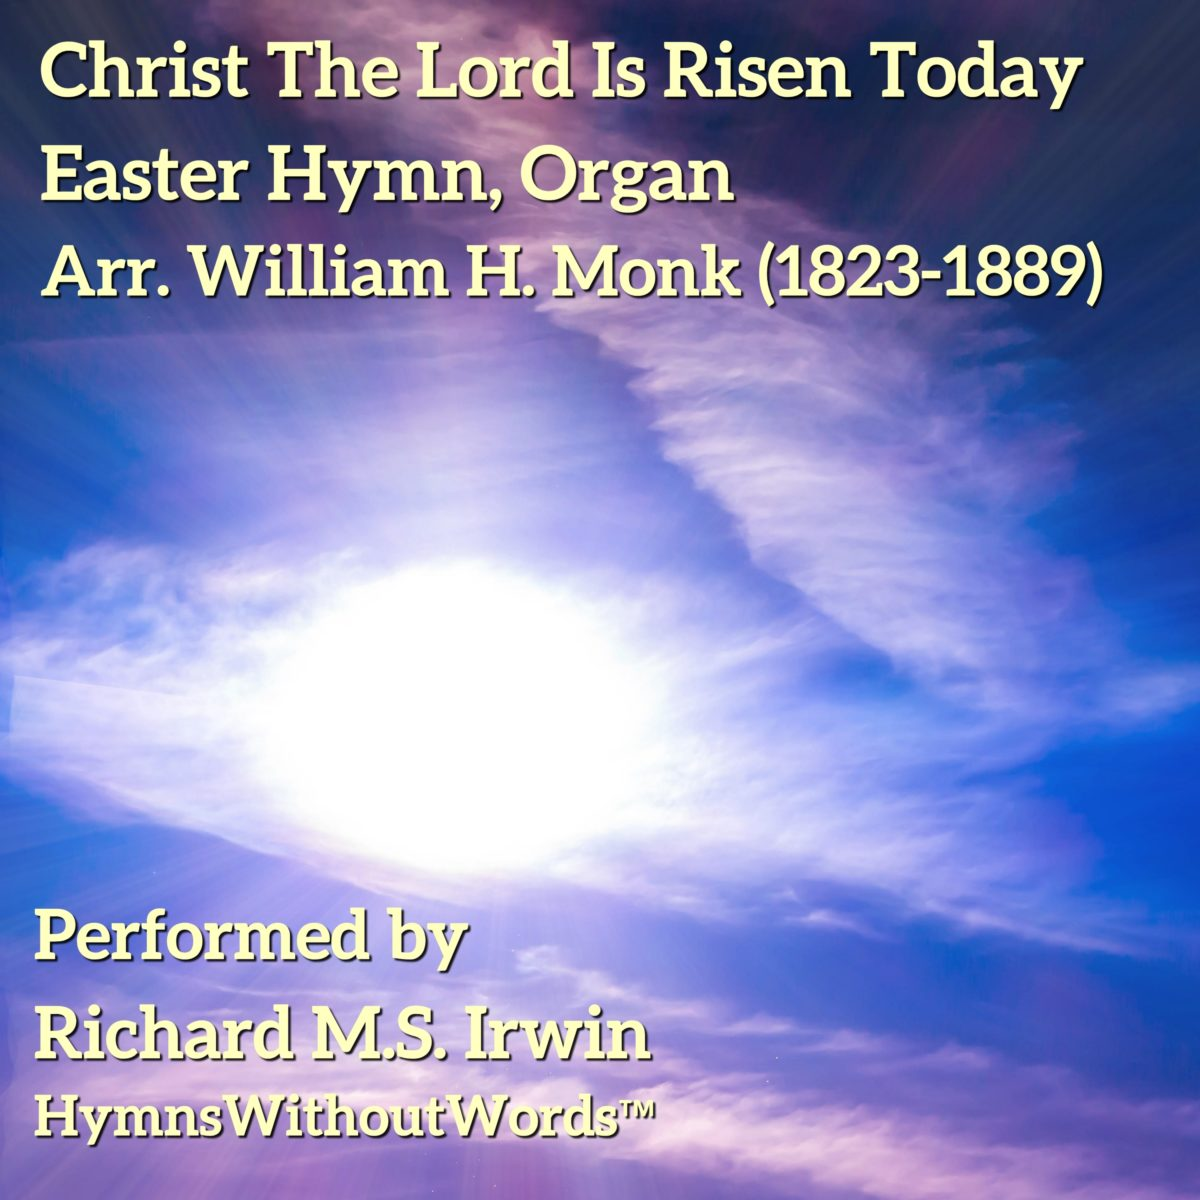 Christ The Lord Is Risen Today (Easter Hymn, Organ, 6 Verses)